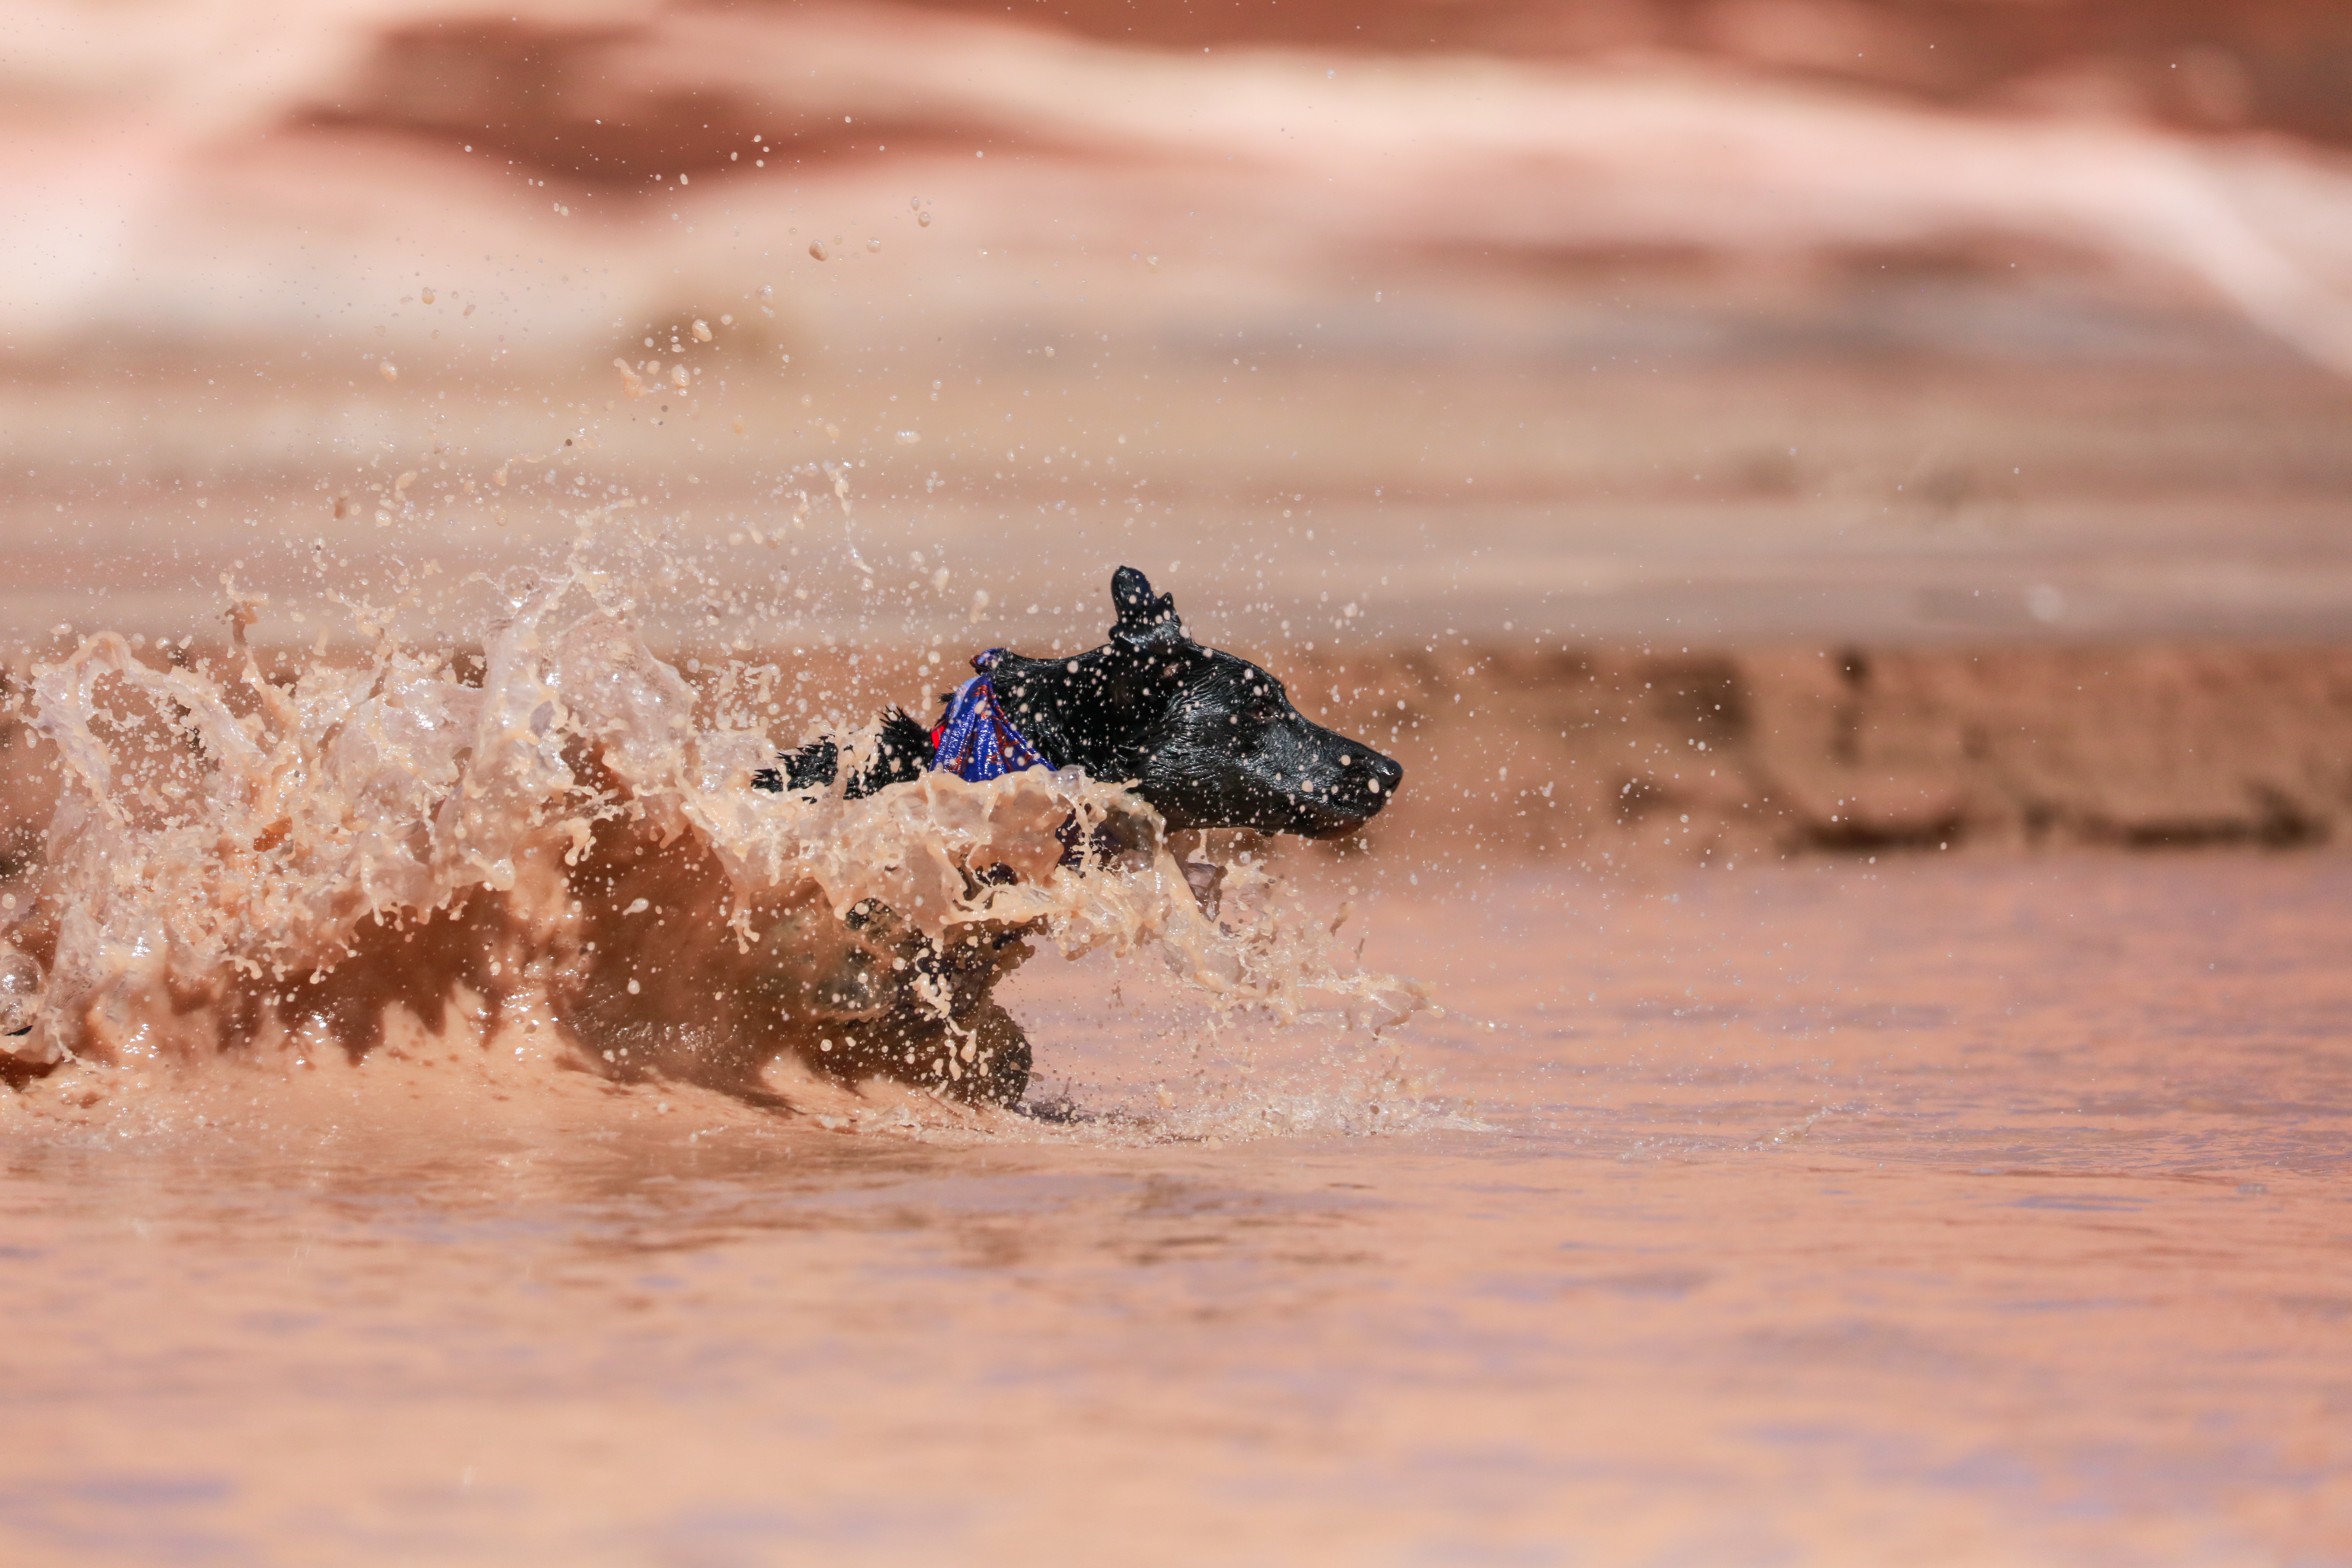 short-coated black dog soaked in brown water